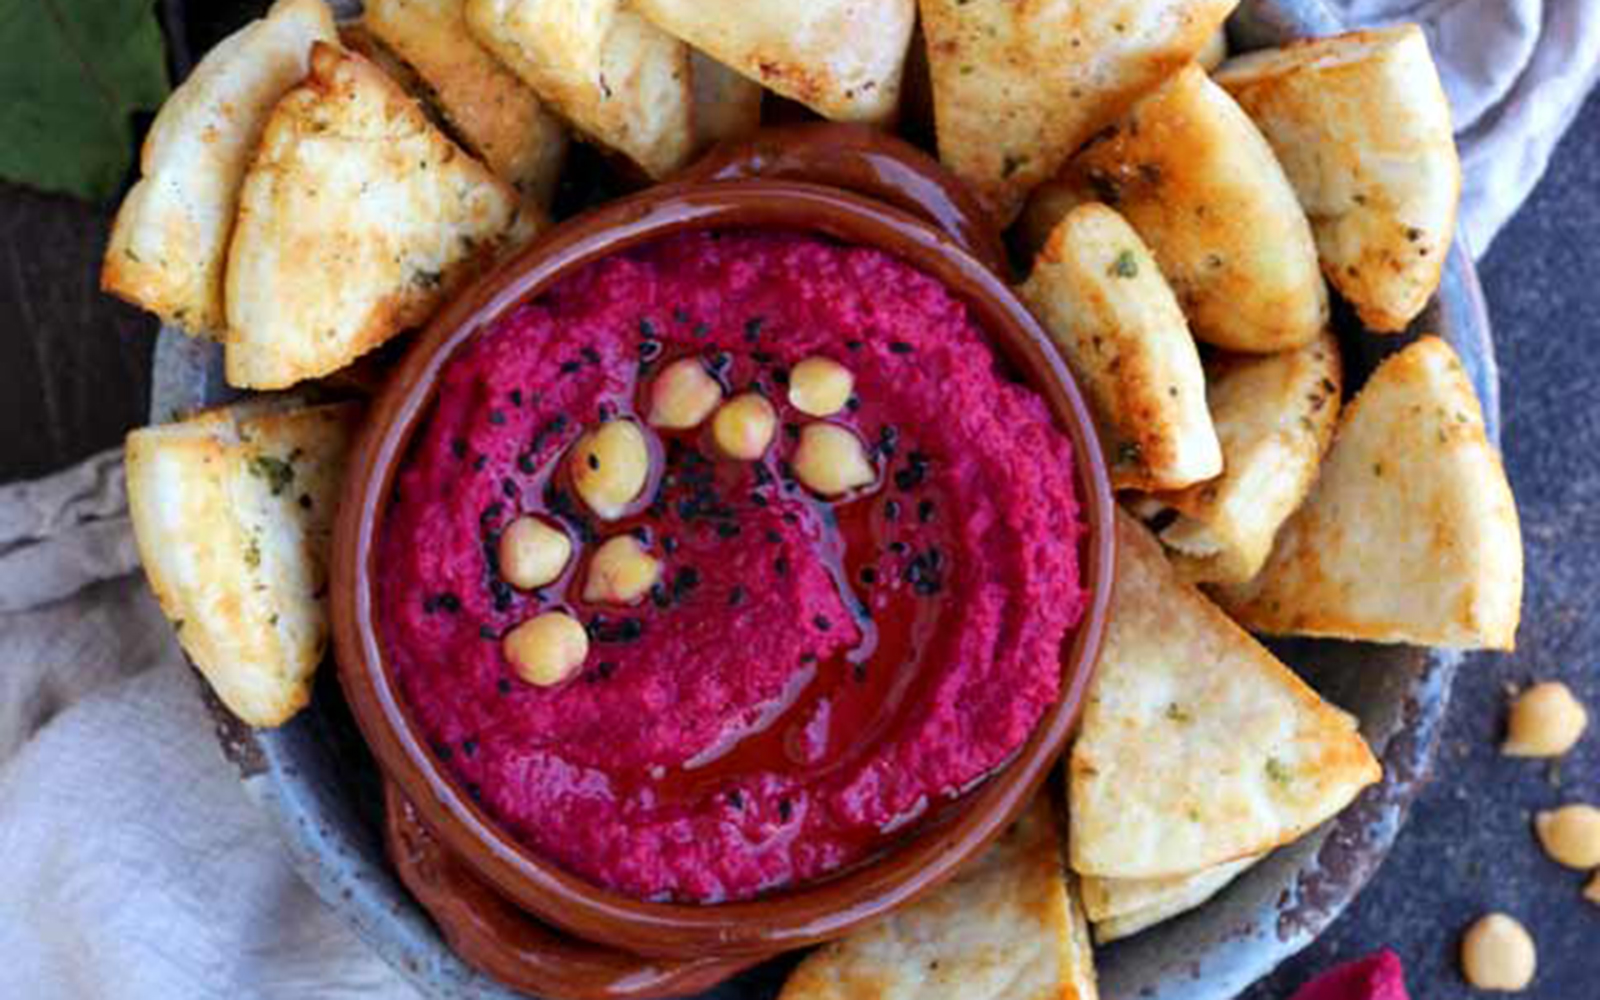 Vegan Roasted Beetroot Hummus with Pita Chips